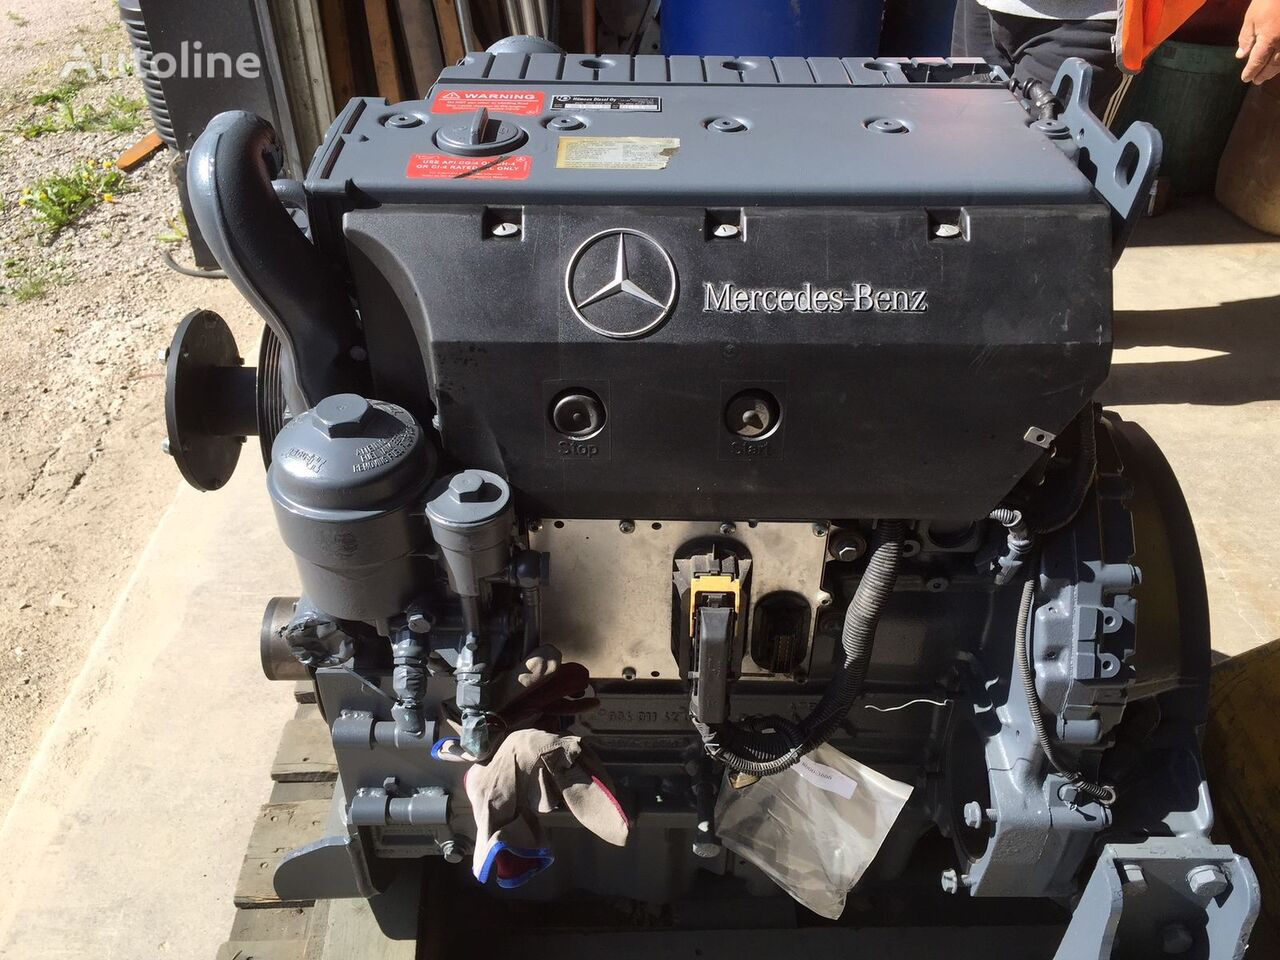 motore  Mercedes Benz OM904 LA refurbished per camion